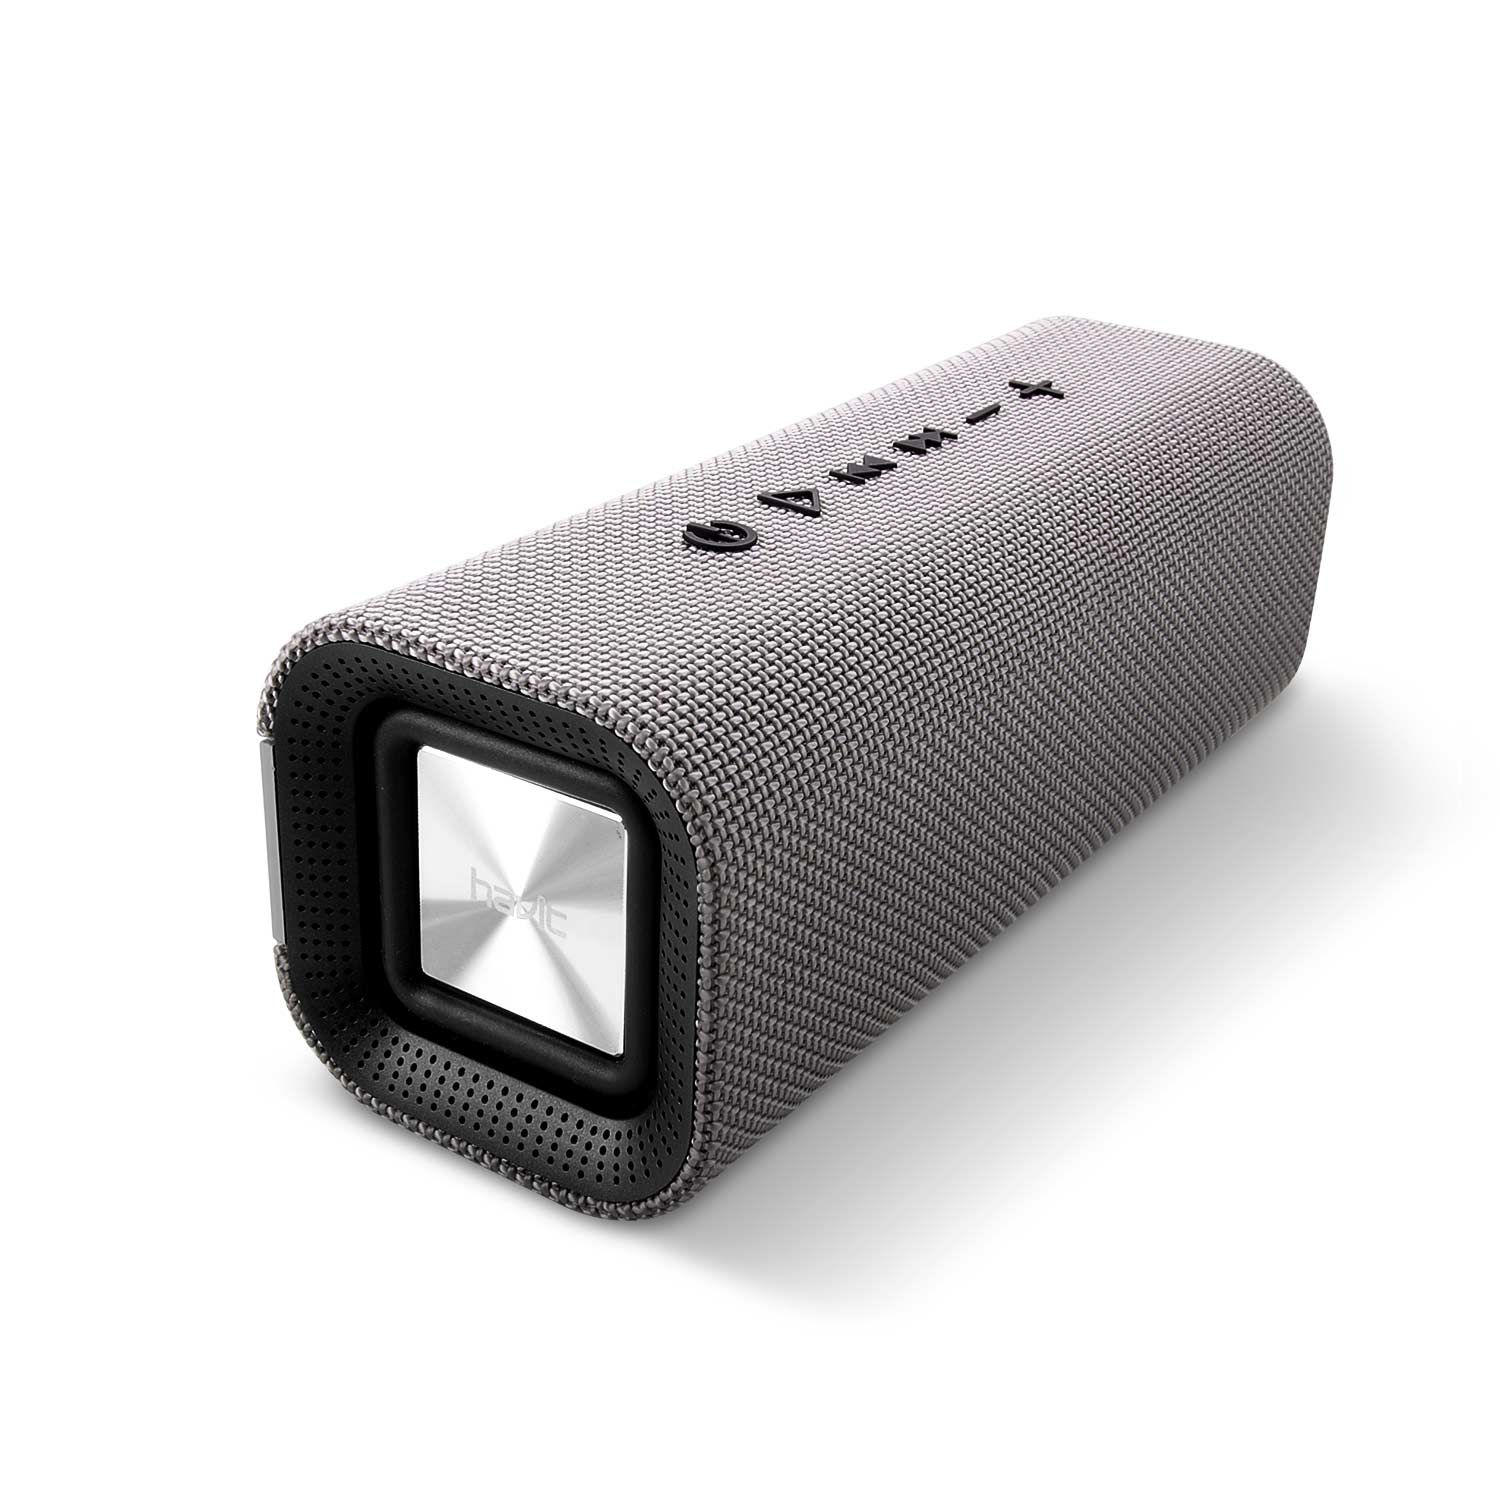 M16 Decorative Bluetooth Speakers With Woven Fabric Mesh Surface